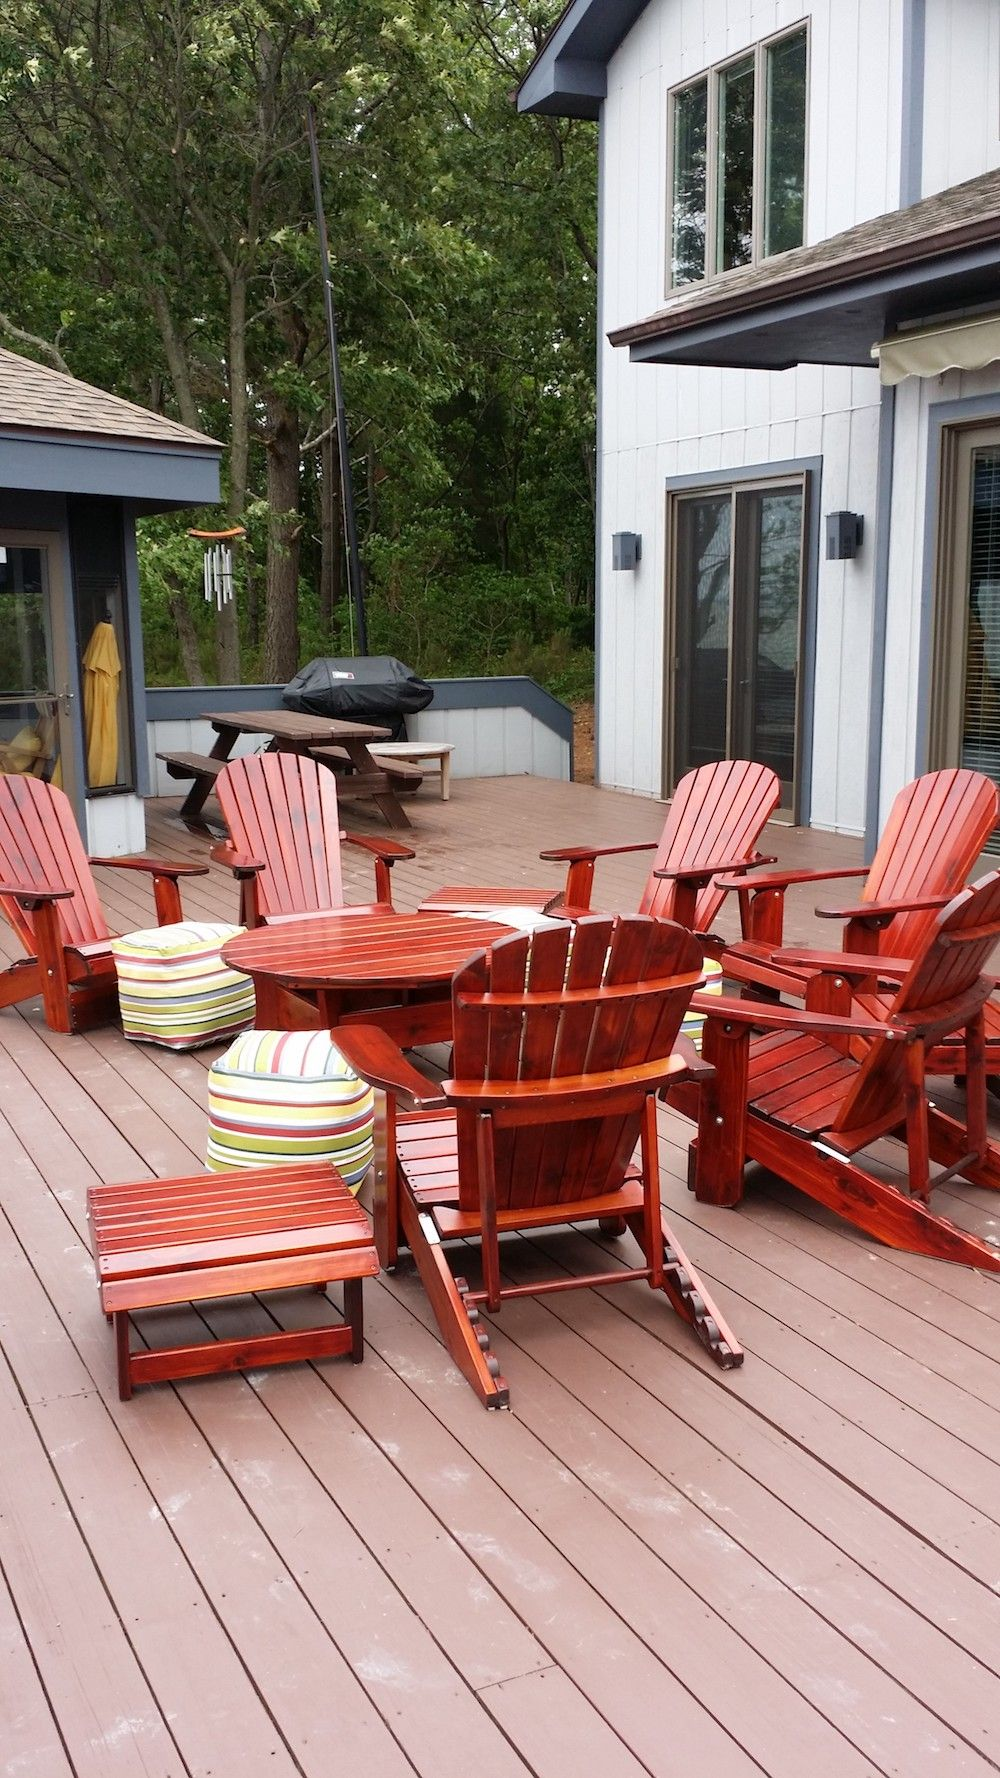 Knotted Cedar Reclining Adirondack Chairs Surrounding A 42 Coffee Table Are A Sure Way To Wooden Patio Chairs Wood Adirondack Chairs Adirondack Chairs Painted